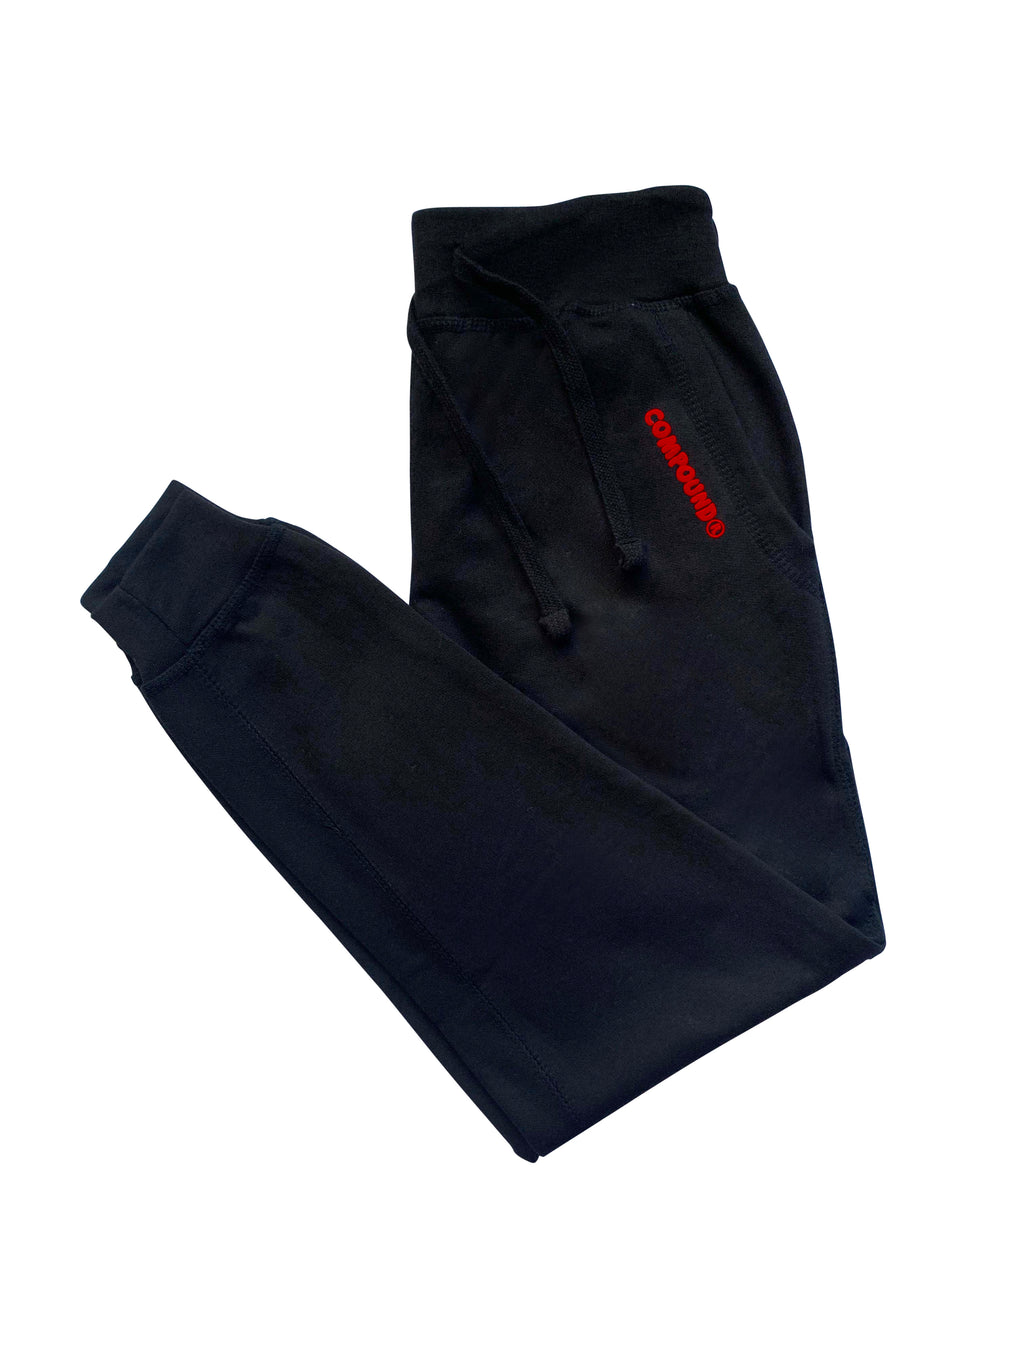 Compound Marshmallow Fleece Jogger Pants (Black)